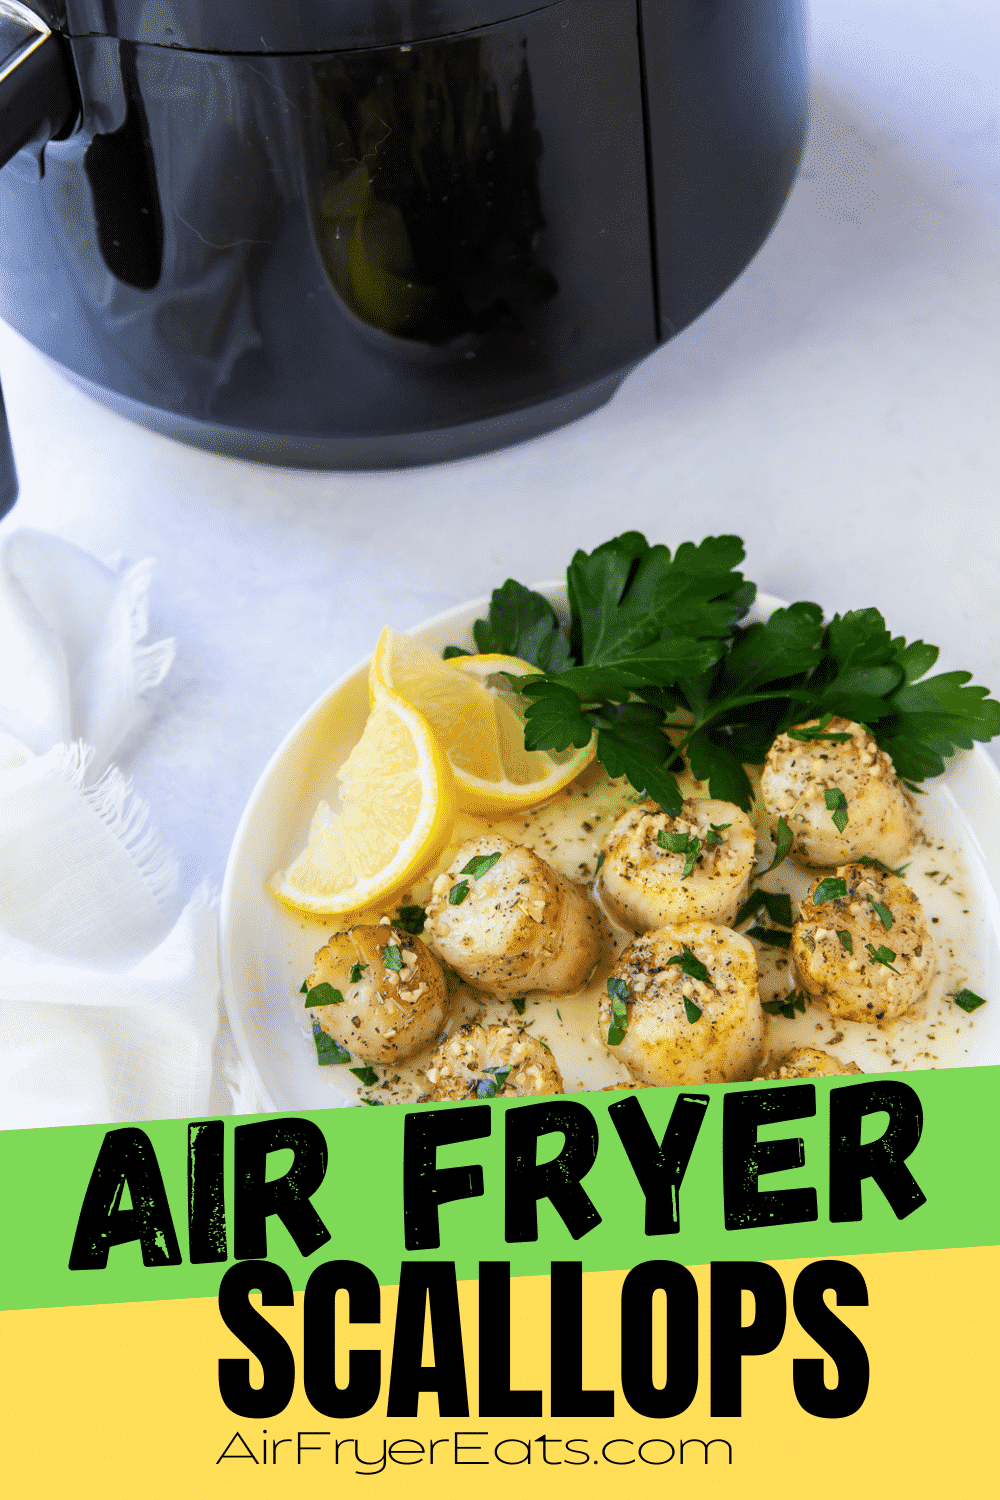 Scallops are not just for eating in a fancy restaurant anymore! Learn to make delicious and perfectly cooked Air Fryer Scallops with a garlic and herb butter sauce that will rival any seafood chef's best dish. #seafood #airfryer #scallops via @vegetarianmamma